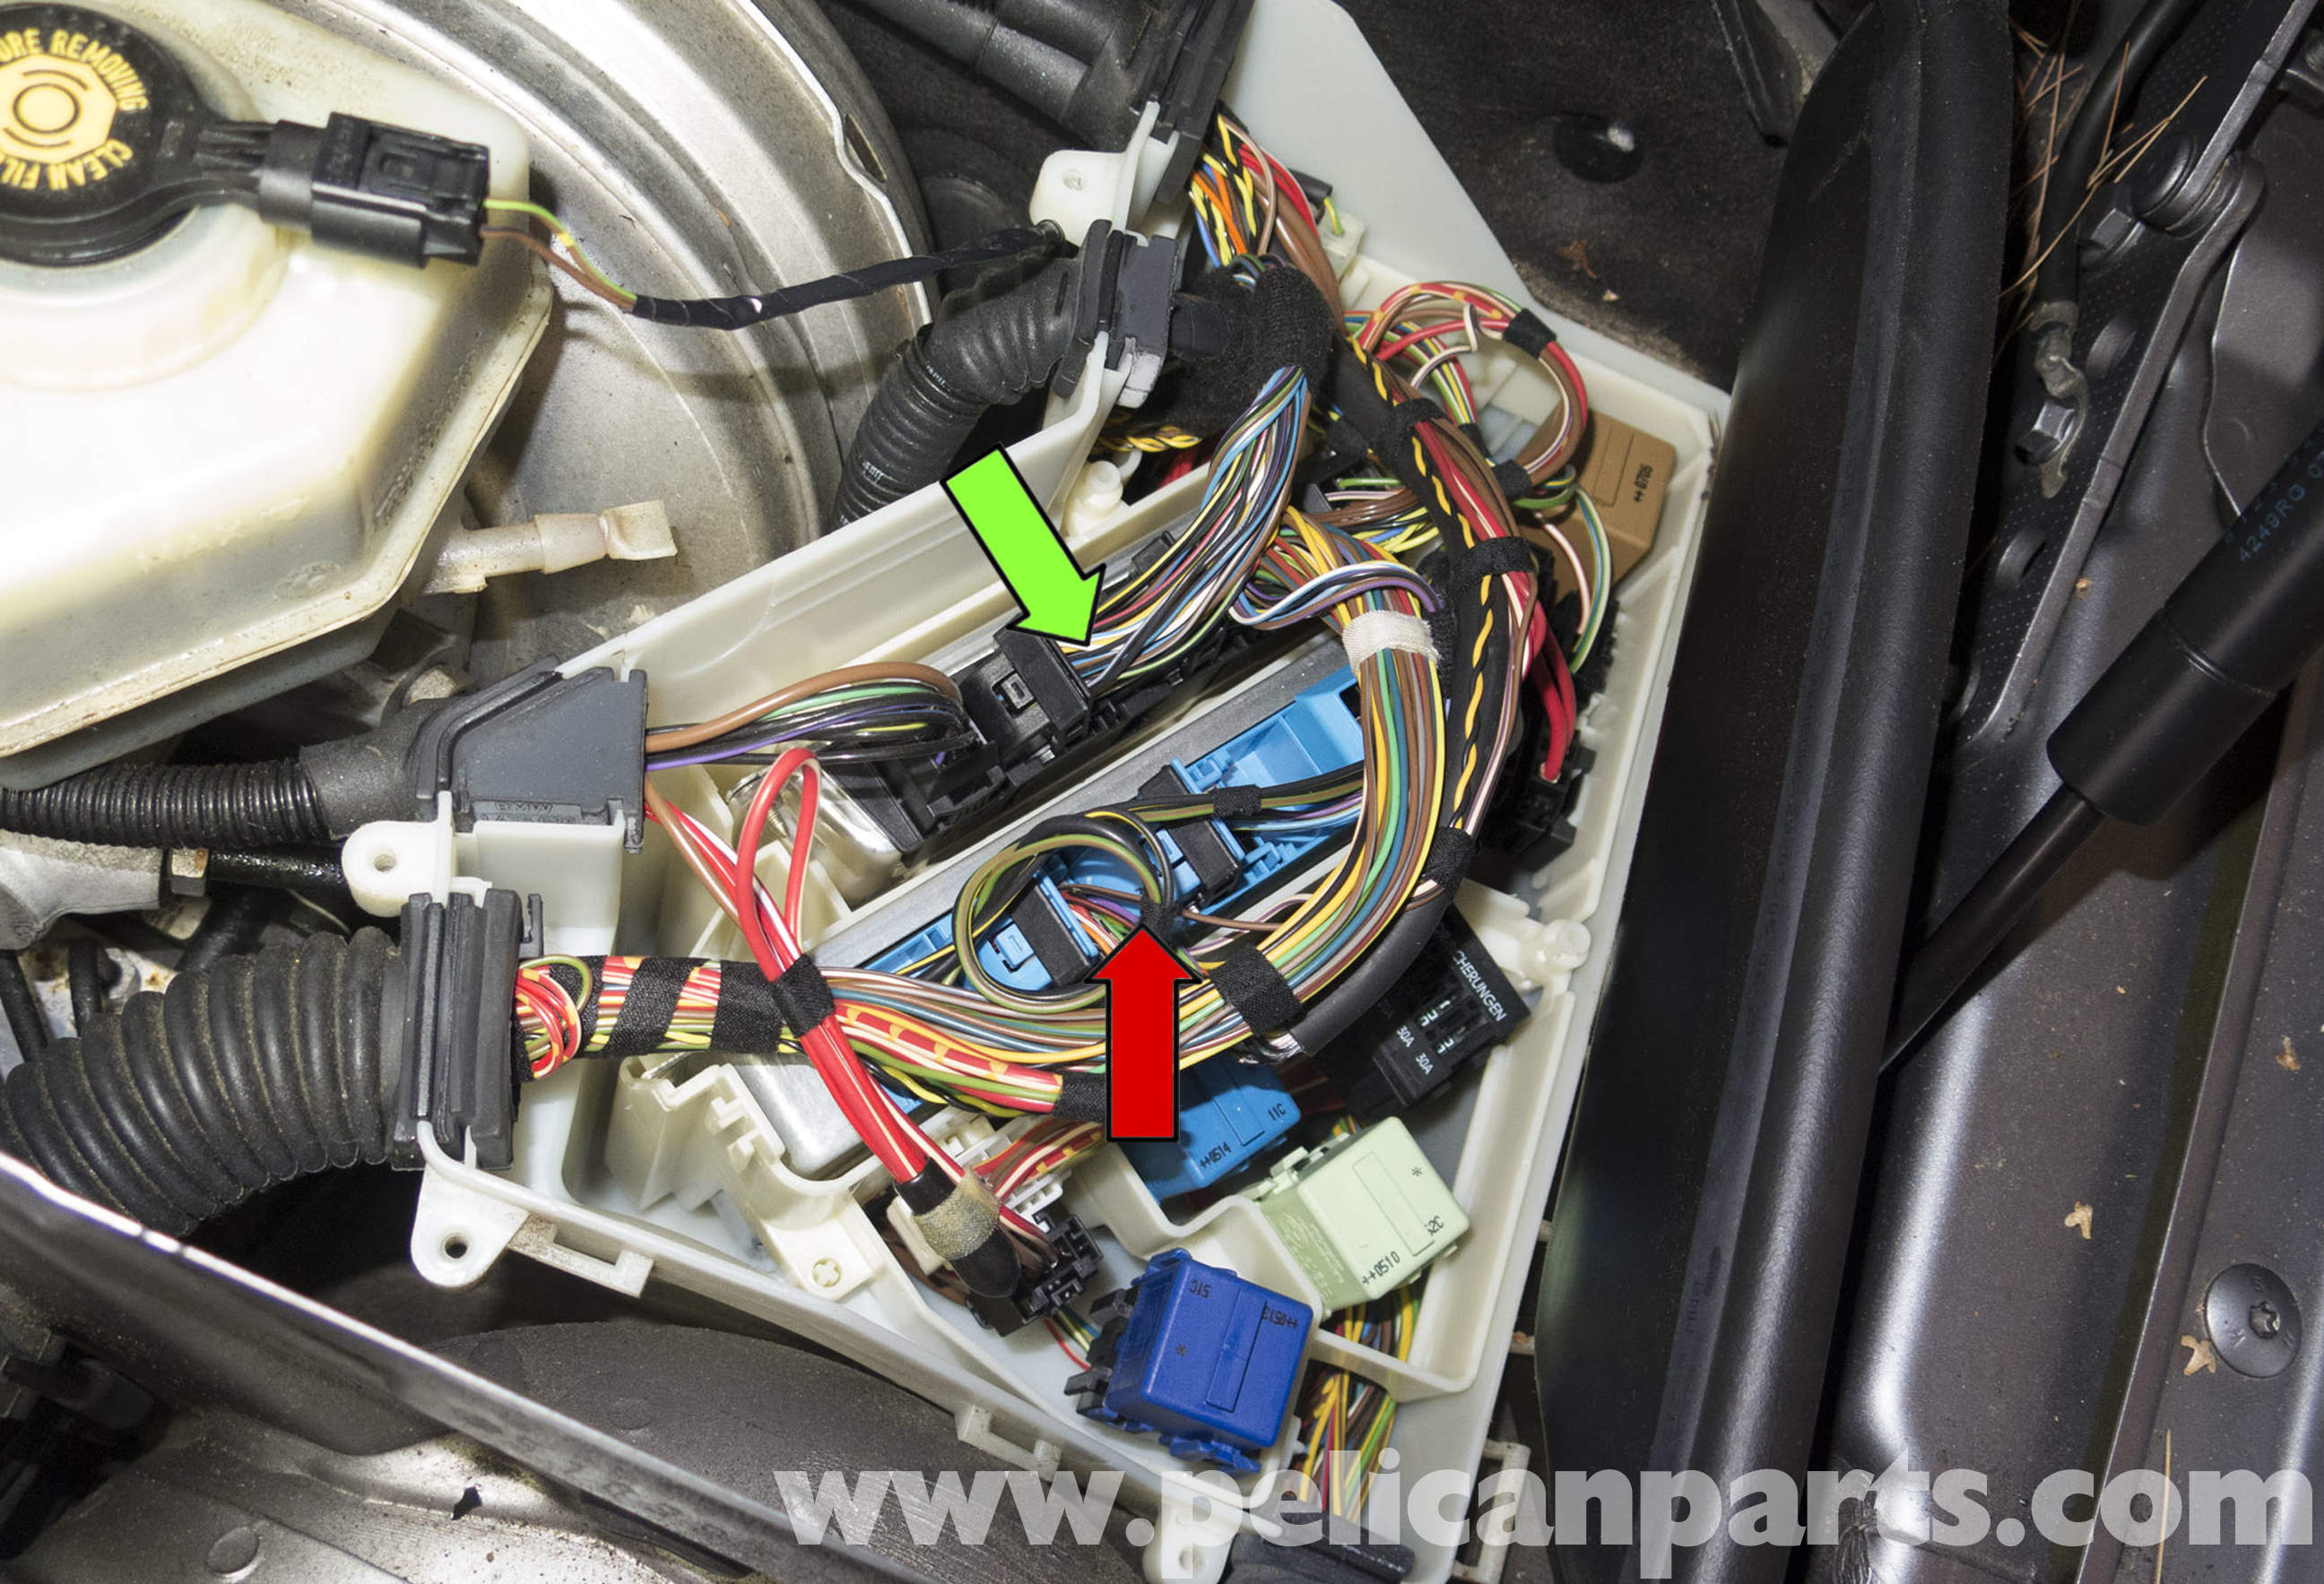 Bmw X5 E53 Fuse Diagrambmw E 2011 Box Diagram 1 Series Bmwcase E39 Fsu Wiring Pelican Technical Article X3 Dme Engine Control Module Relay And Main Replacing